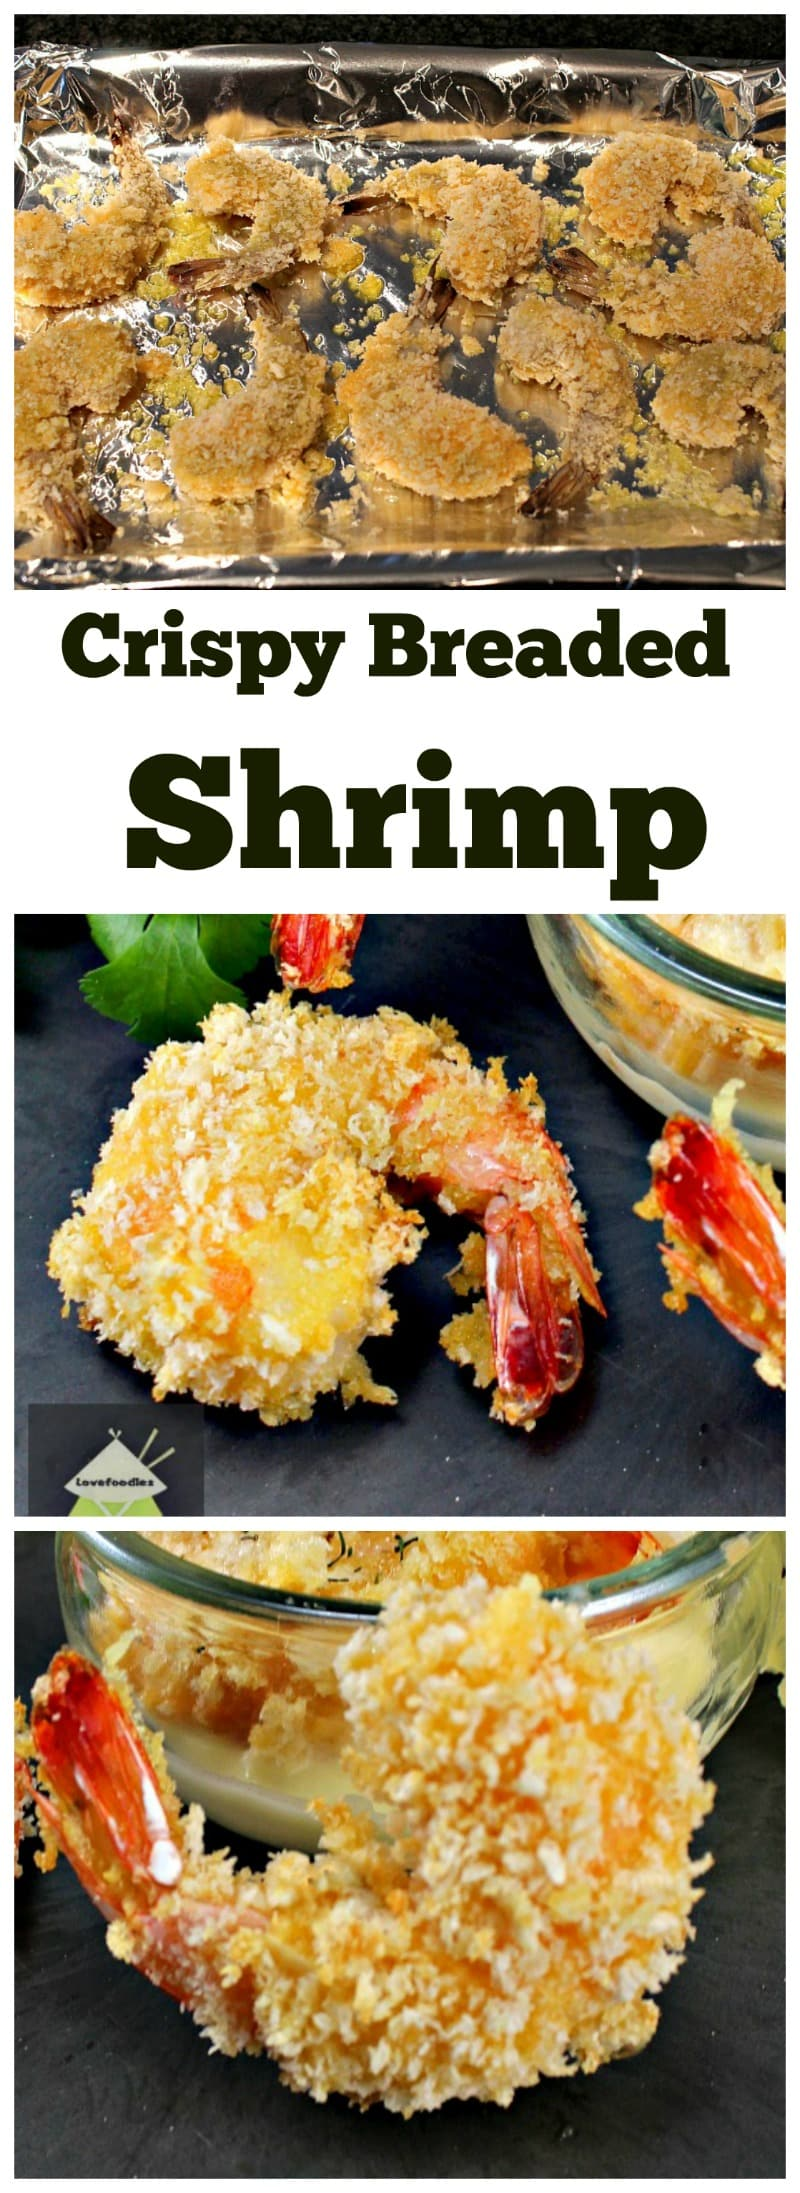 Crispy Breaded Shrimp. A fuss free, easy and quick recipe, serve as a starter or as party food. Oh so good! No frying either! Popular on Game Days too because they are so quick and easy to prepare. | Lovefoodies.com